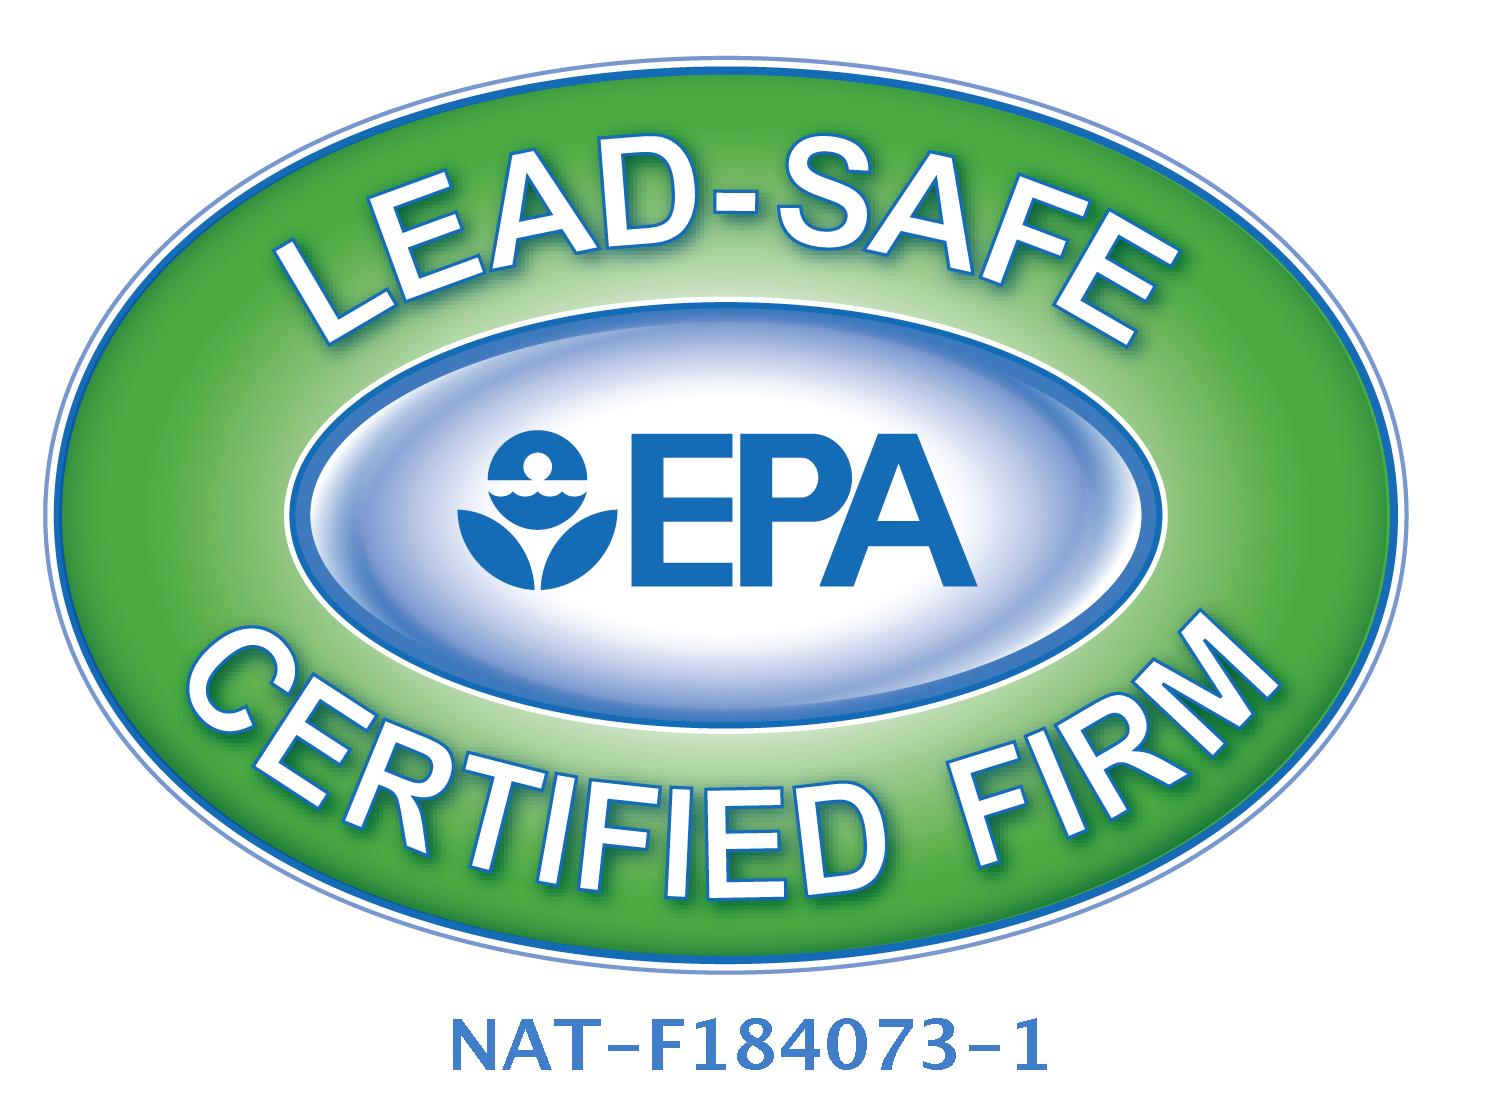 Certified by the United States Environmental Agency -